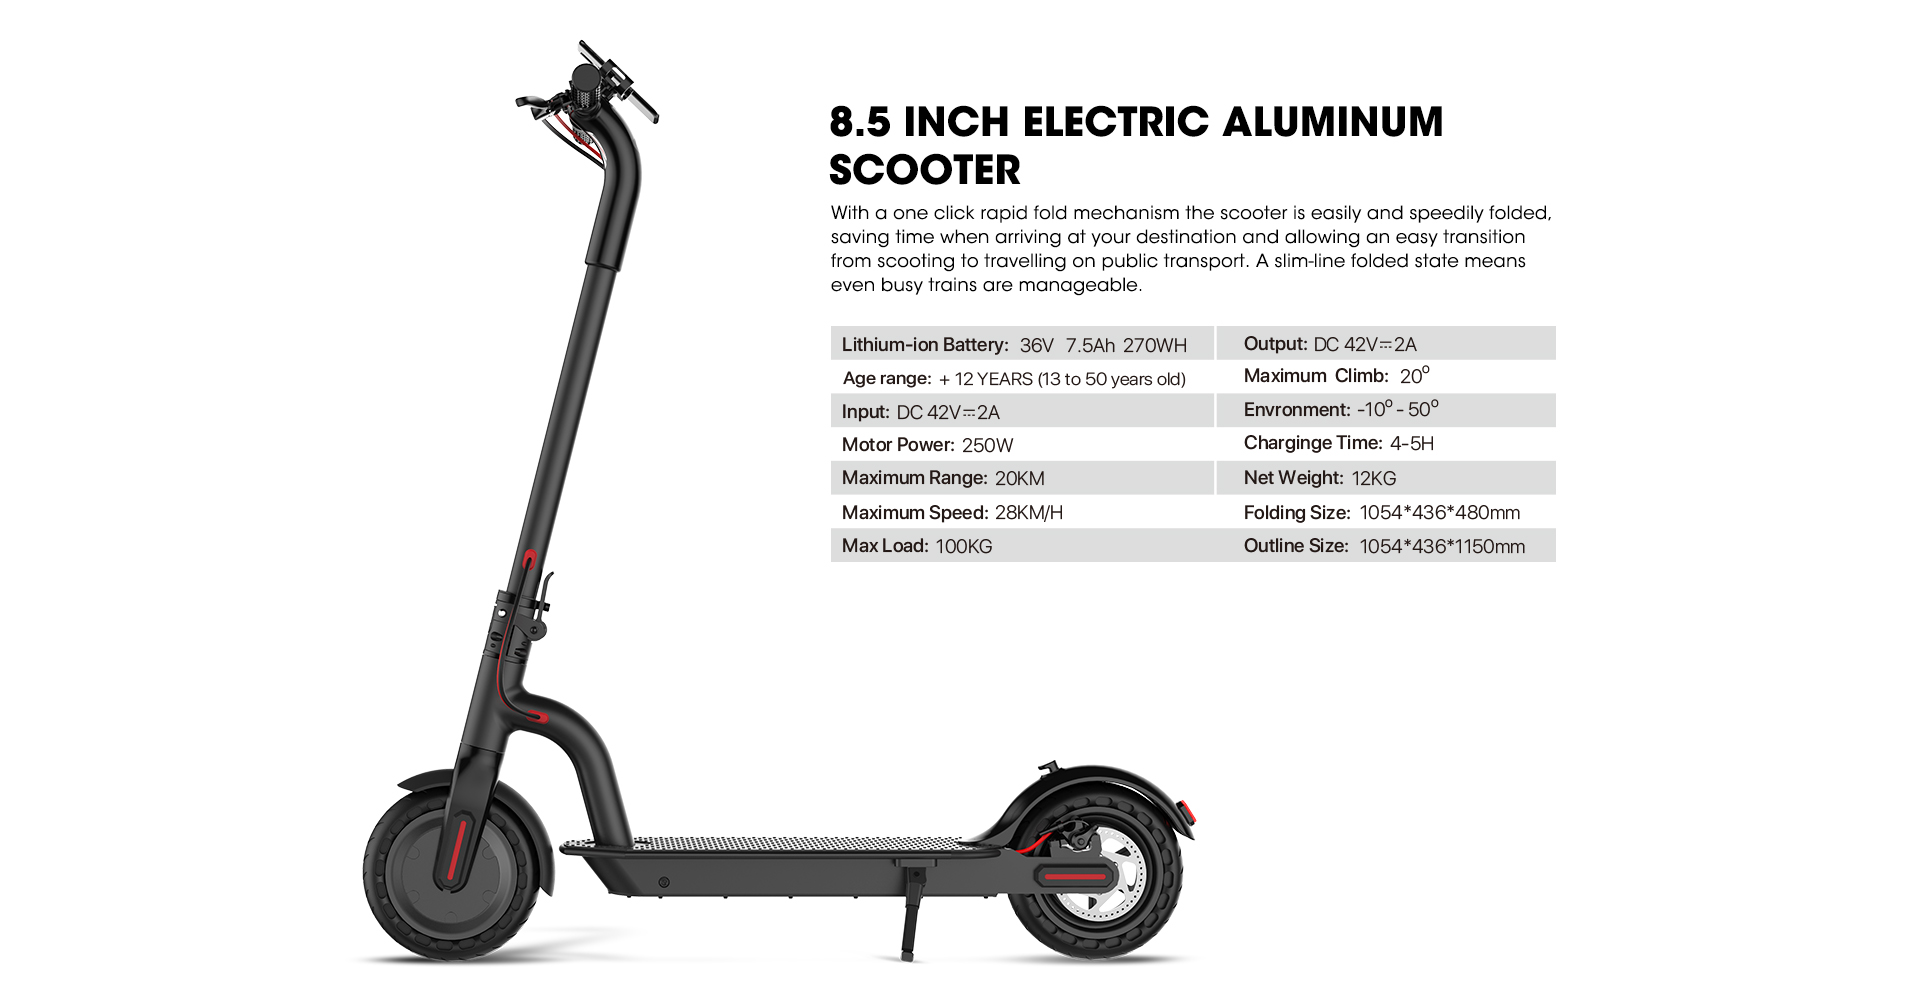 foldable-electric-scooter-specification.jpg